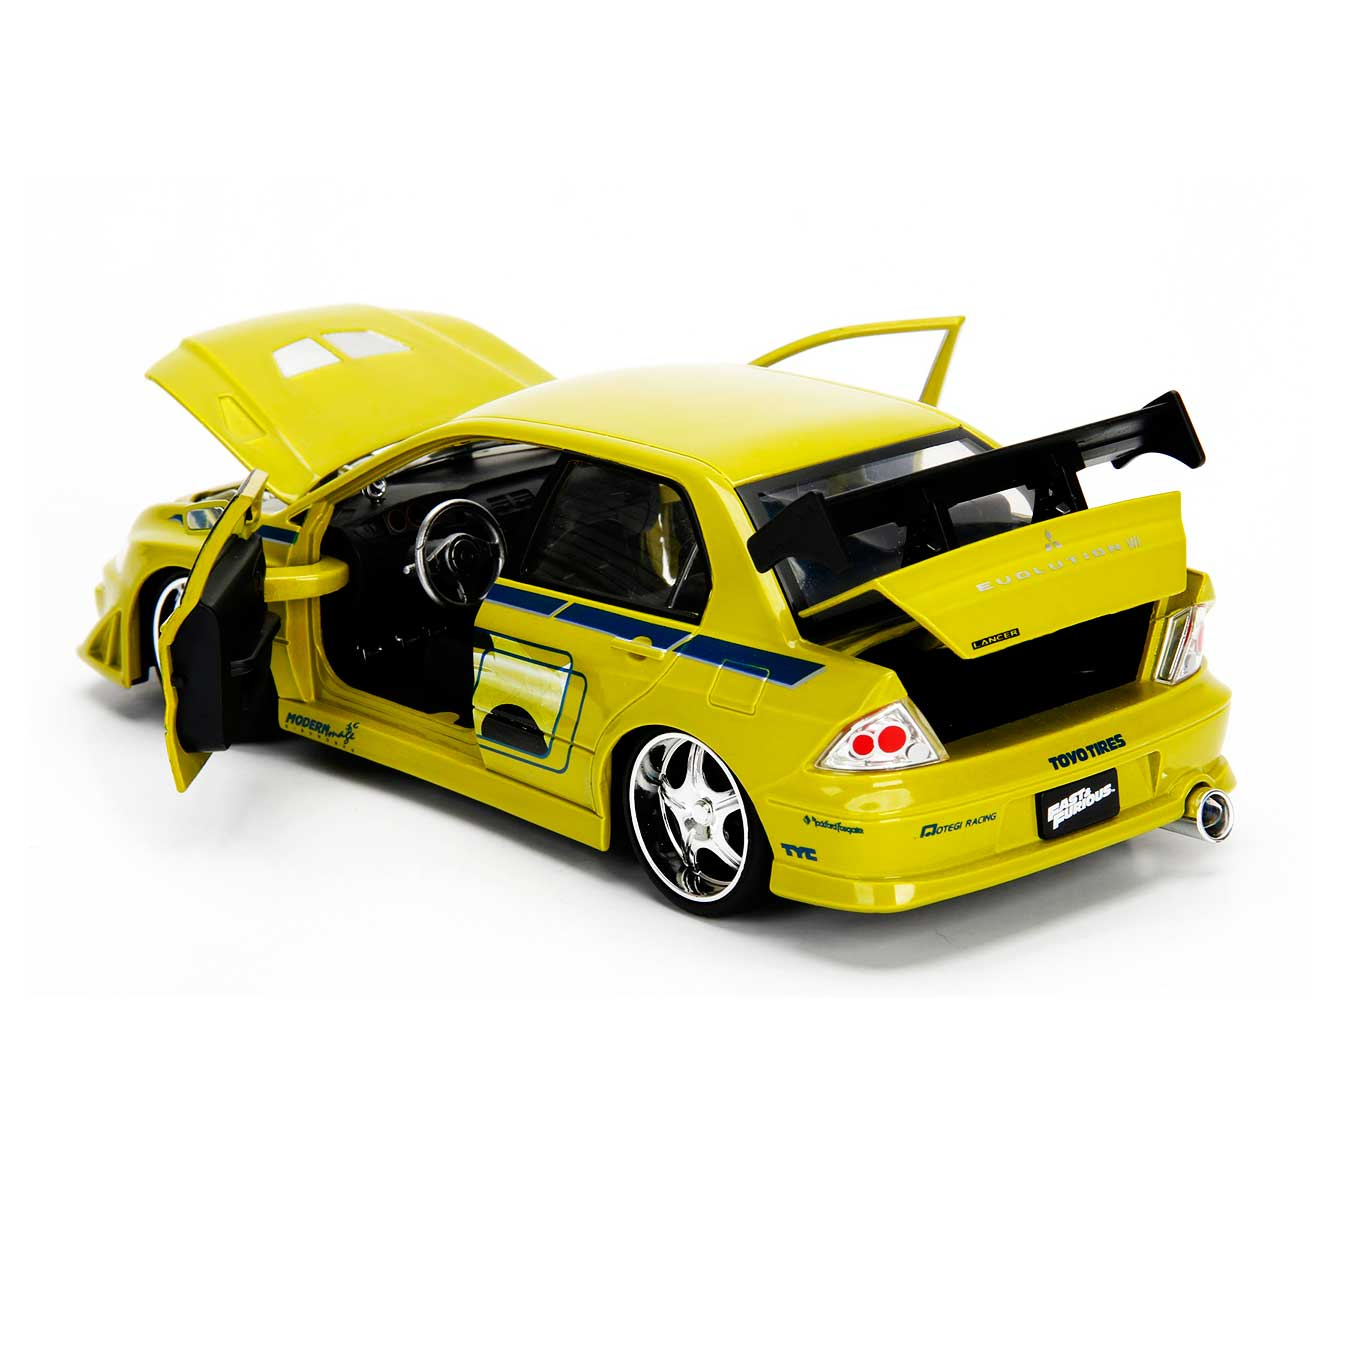 remote controlled models with Fast Furious Brians Mitsubishi Lancer Evo 7 124 Scale P 697 on Boeing 727 further Jana as well 80s Theme Cutout furthermore Saber C Series likewise Print Toys Mattel Unveils 300 3D Printers Kids Reveals HOVERBOARD Inter  Connected House Barbie.